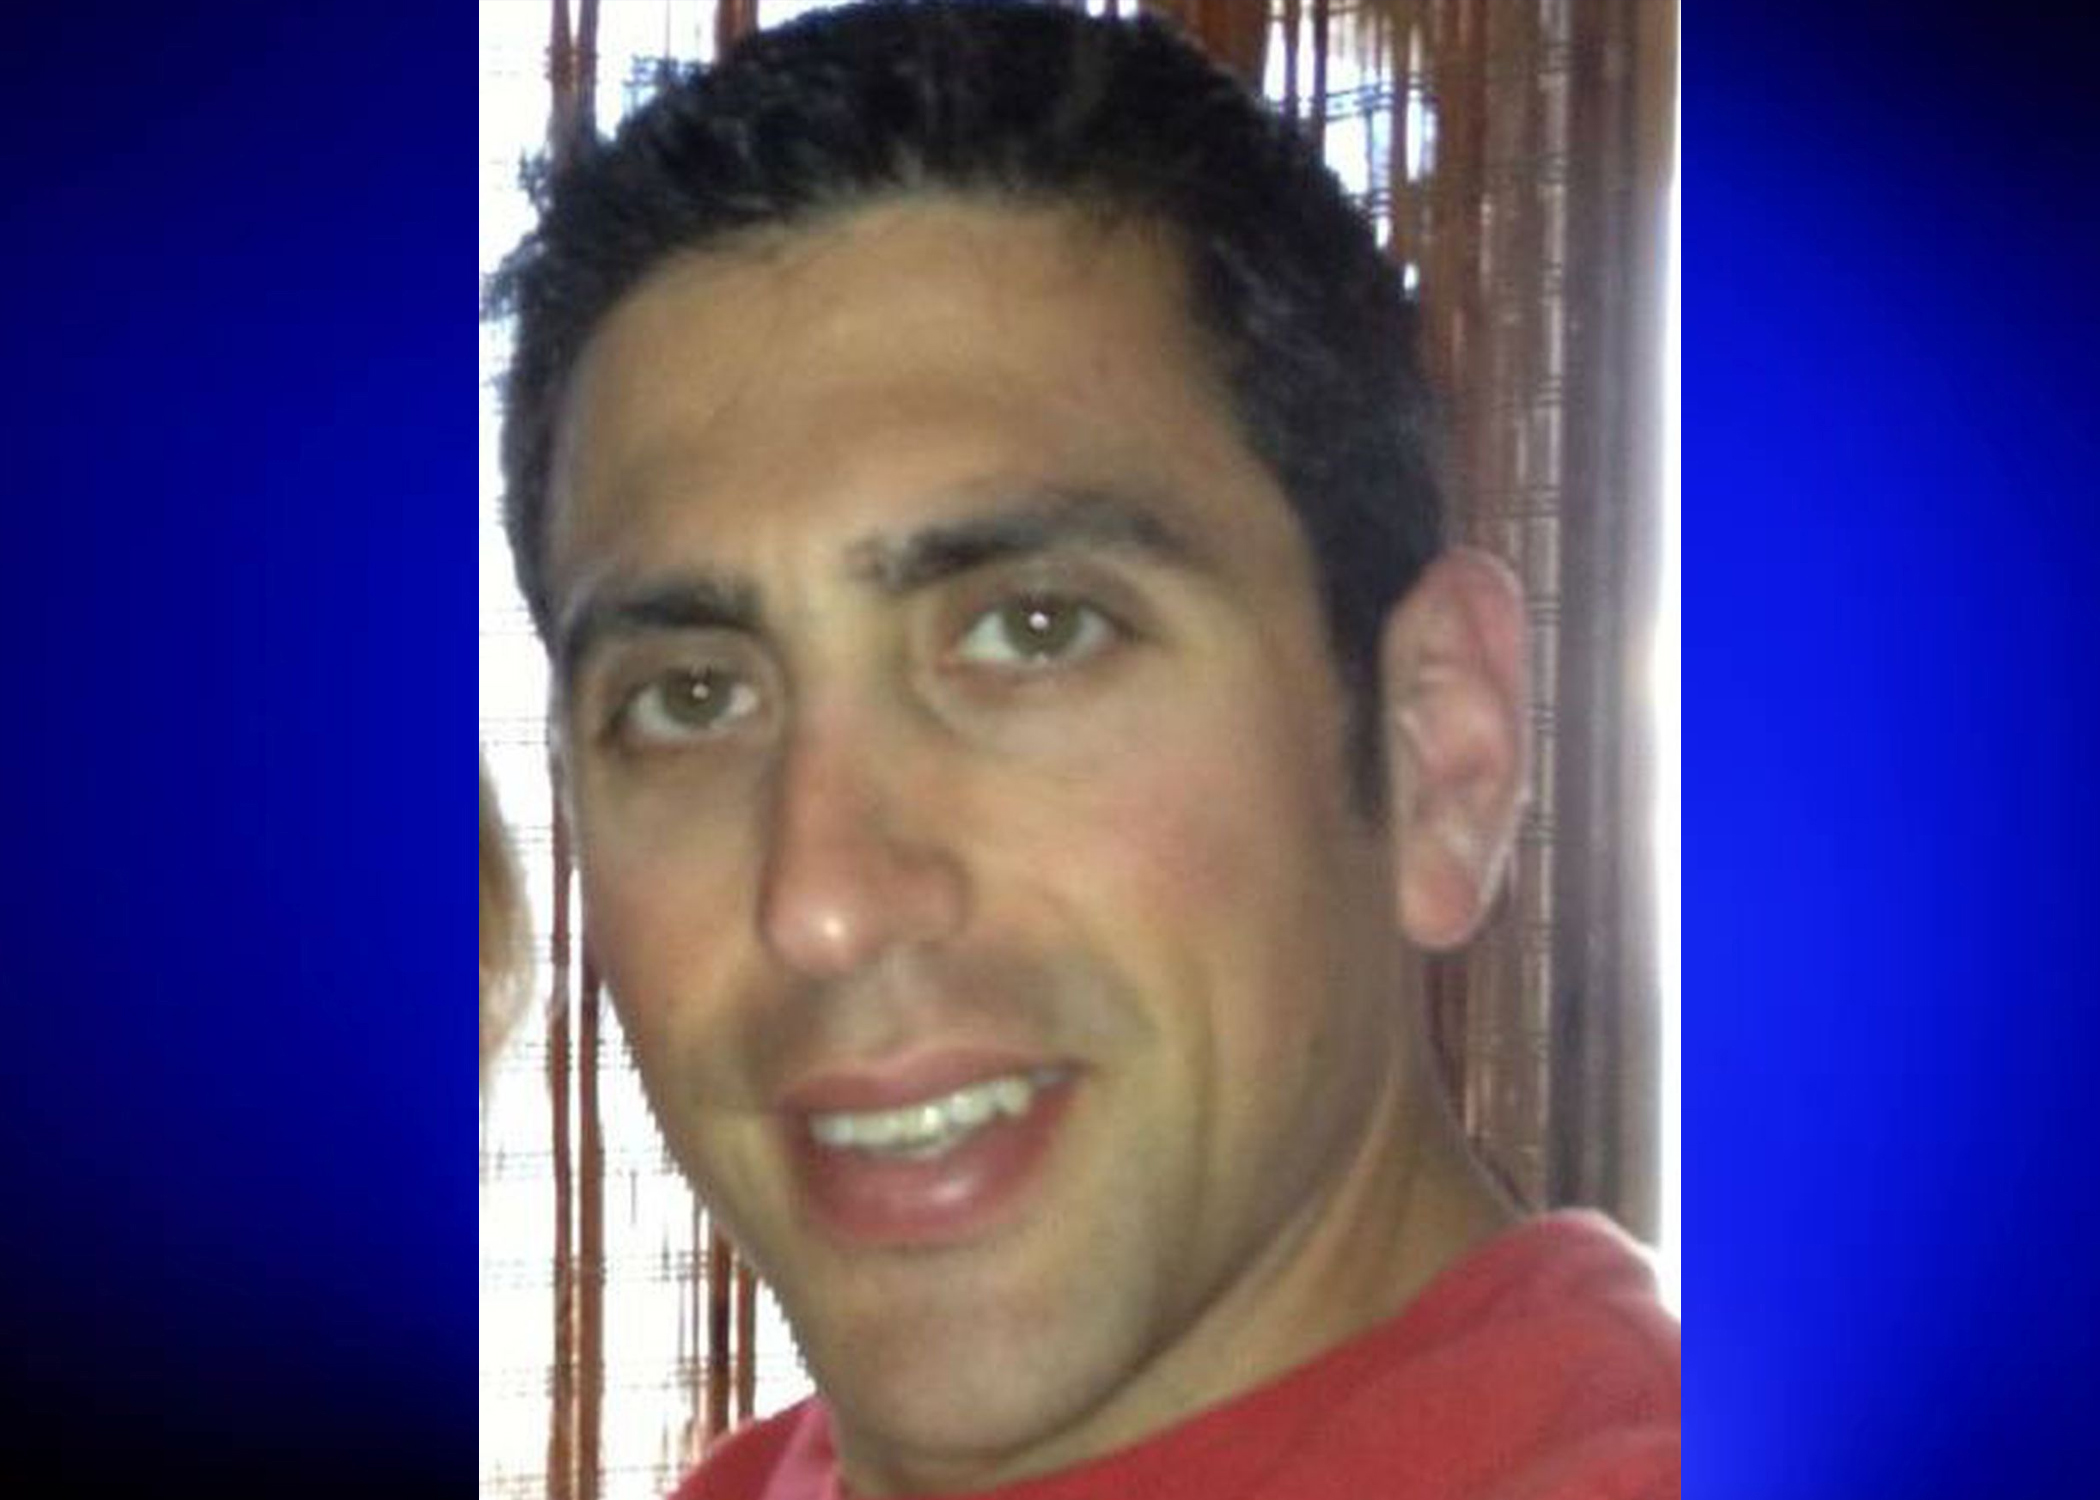 LifeSouth to host blood drive in honor of Hoover's Mike Gilotti